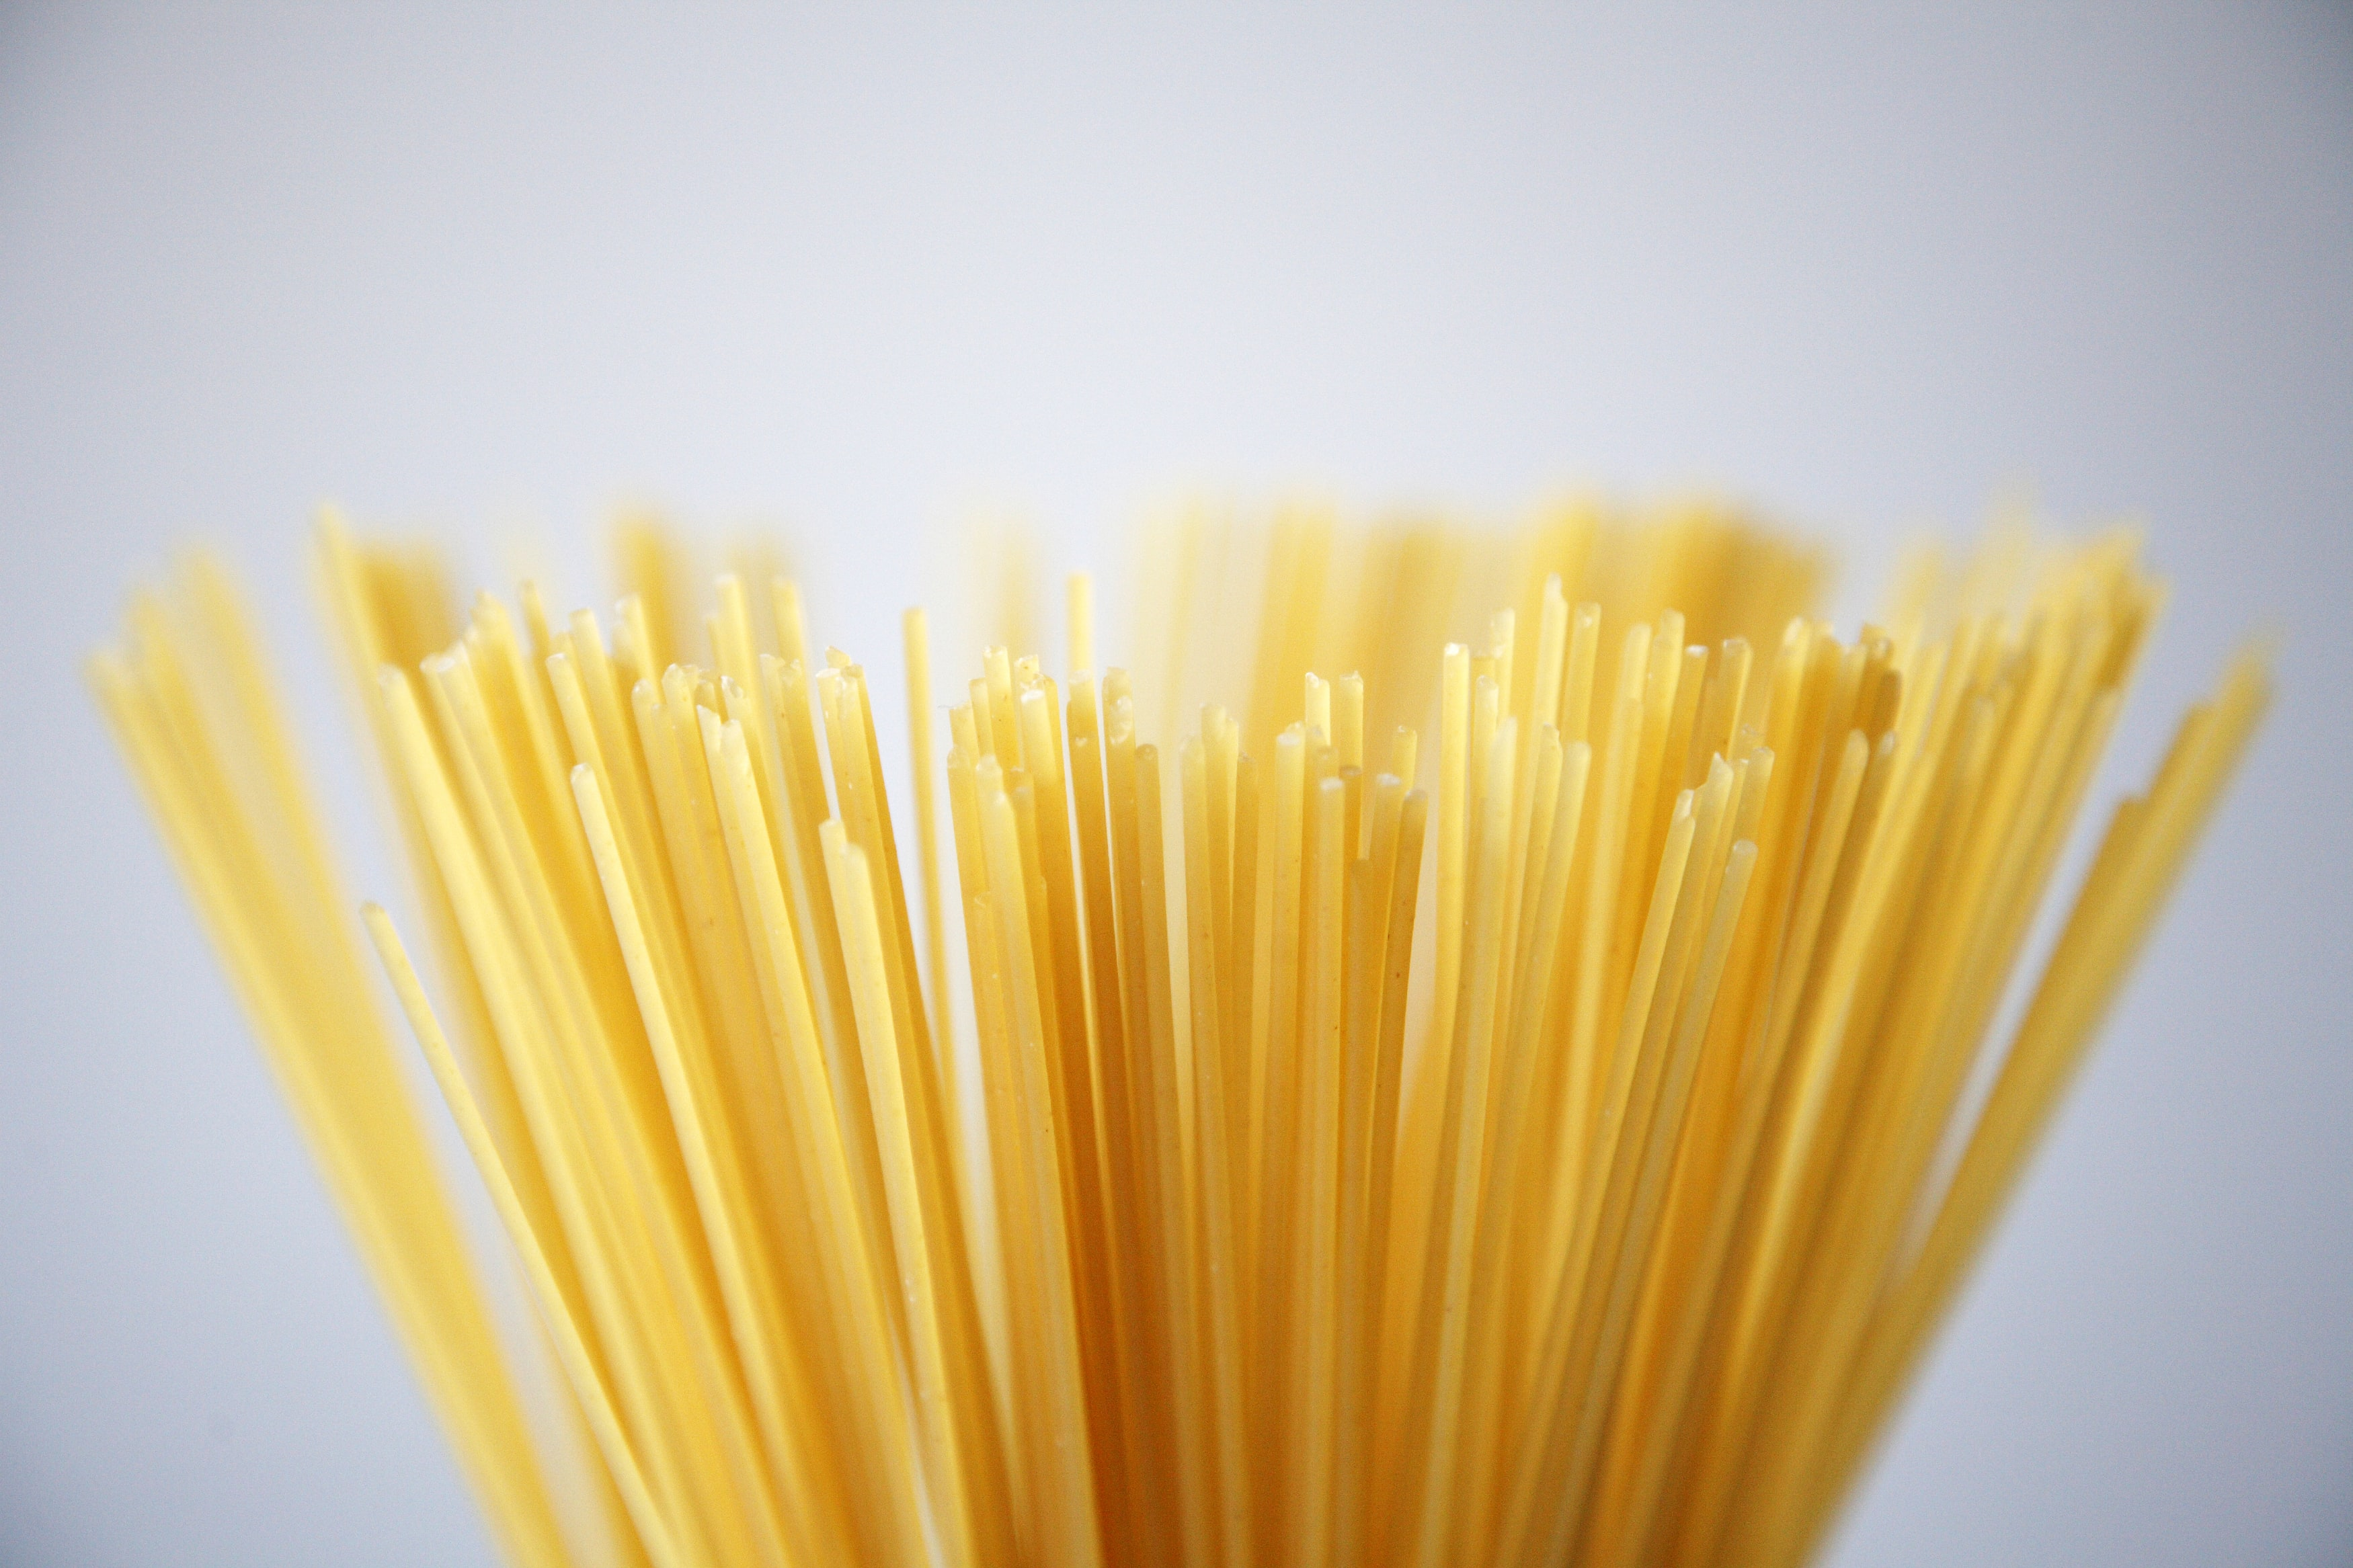 yellow stick in close up photography